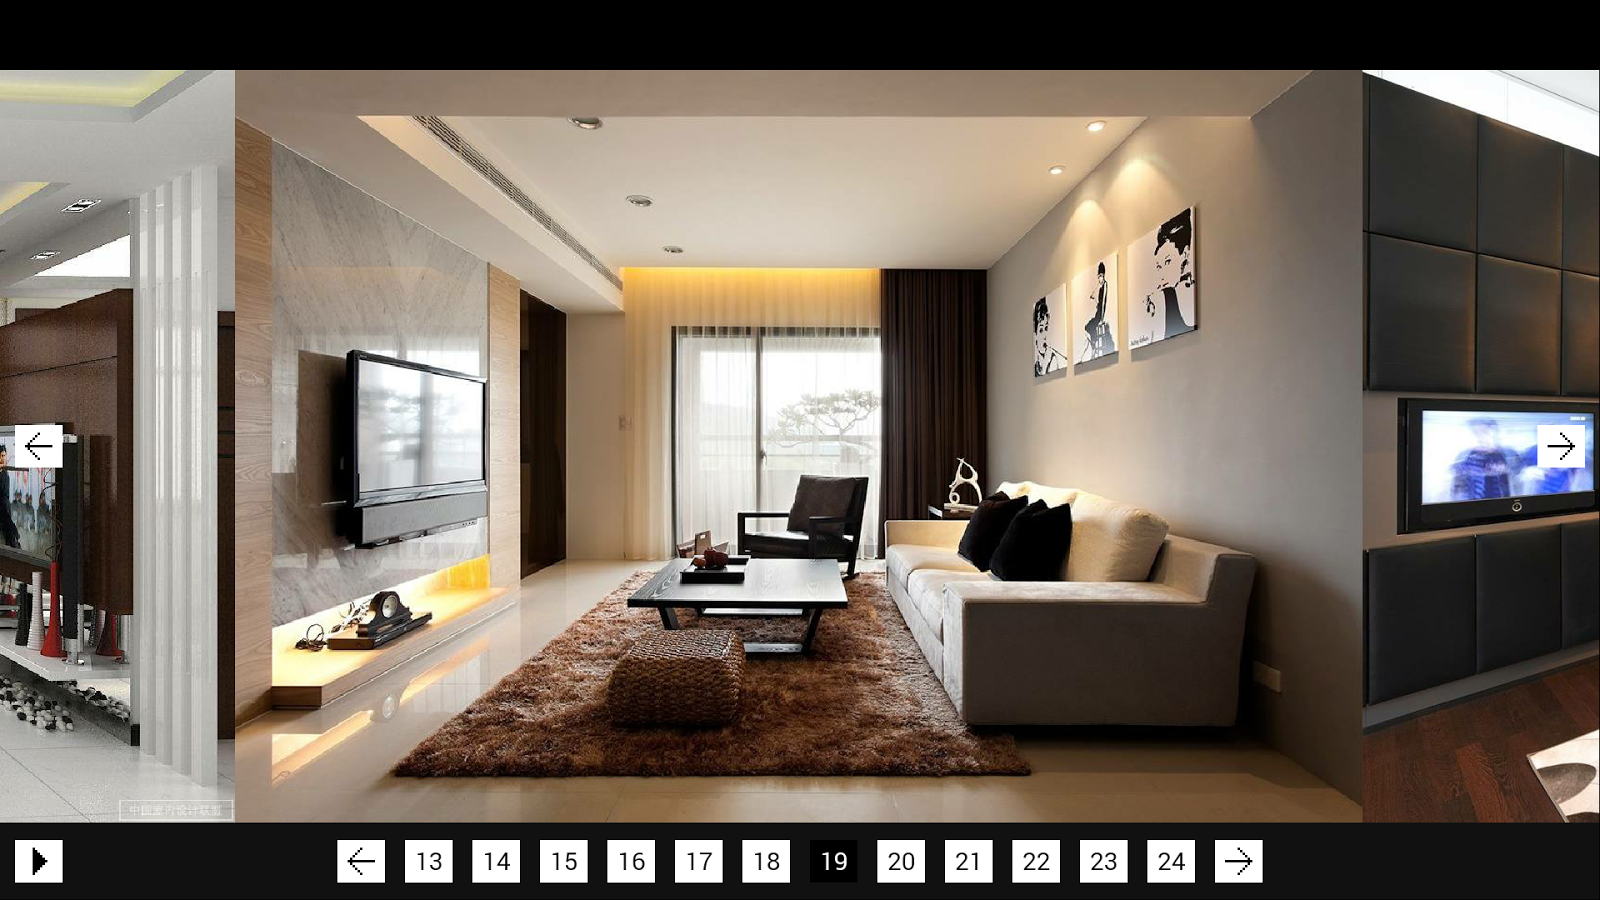 Home interior design android apps on google play for House designs interior photos